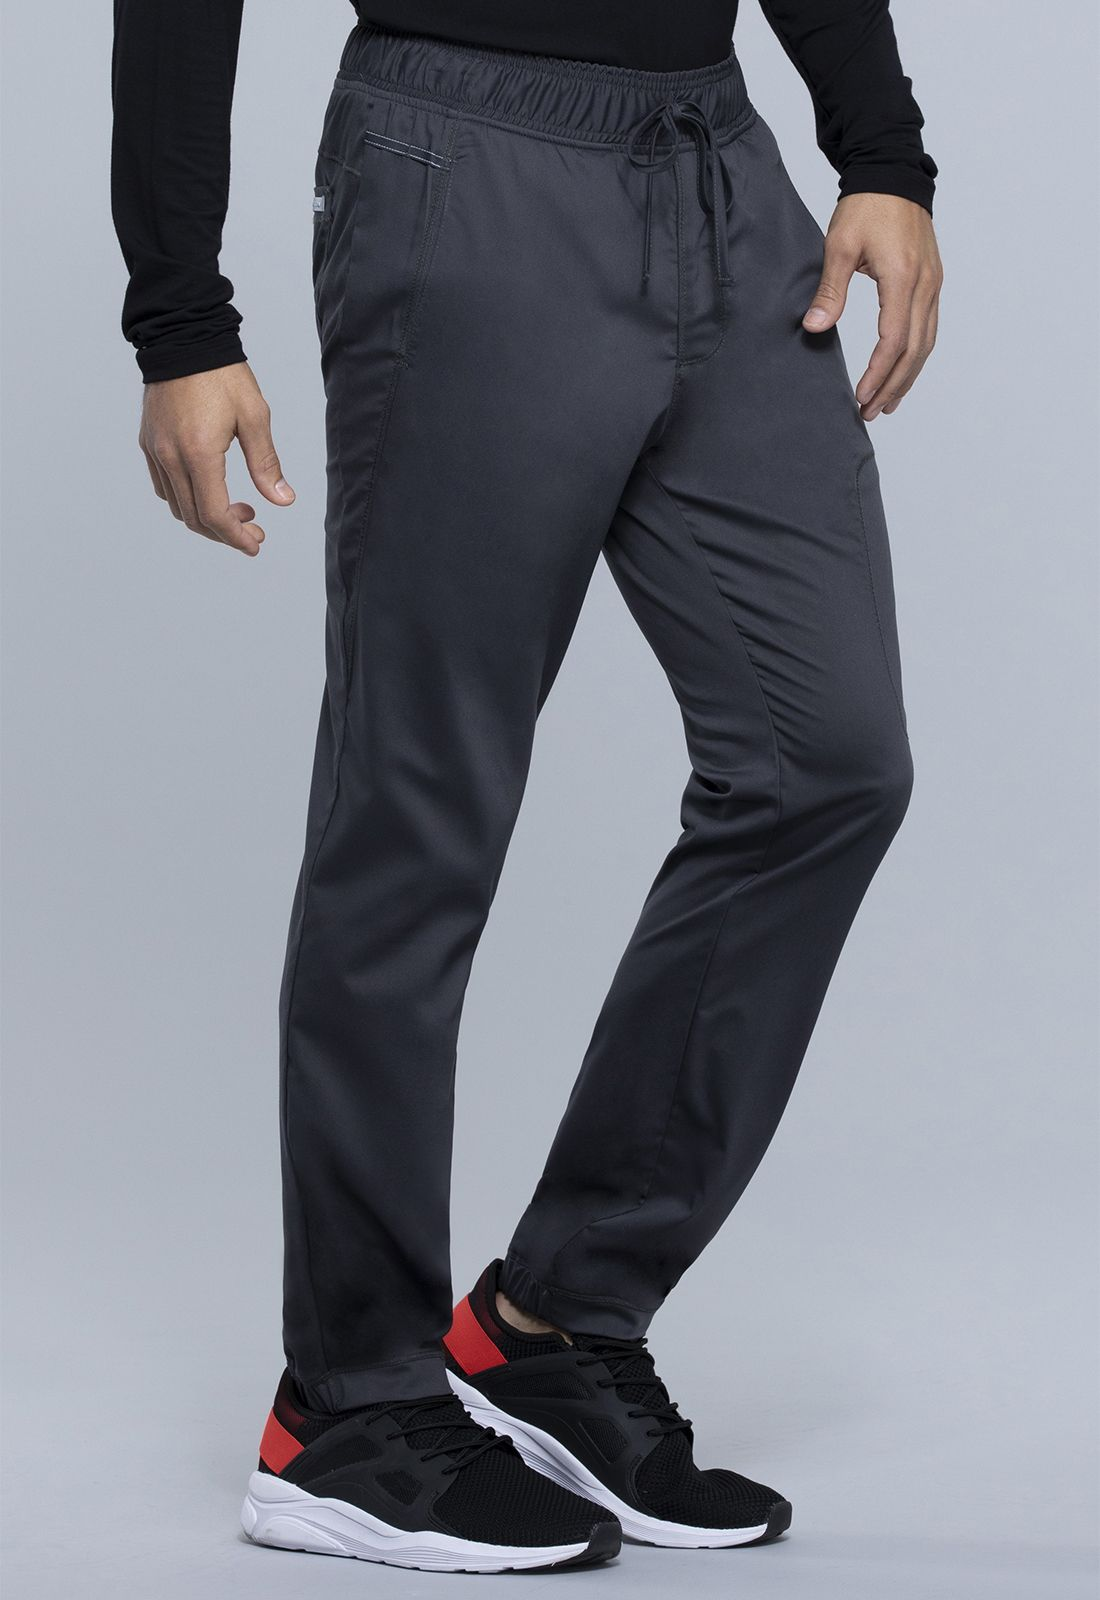 https://medcloth.by/images/stories/virtuemart/product/ww012-pewter-3.jpg